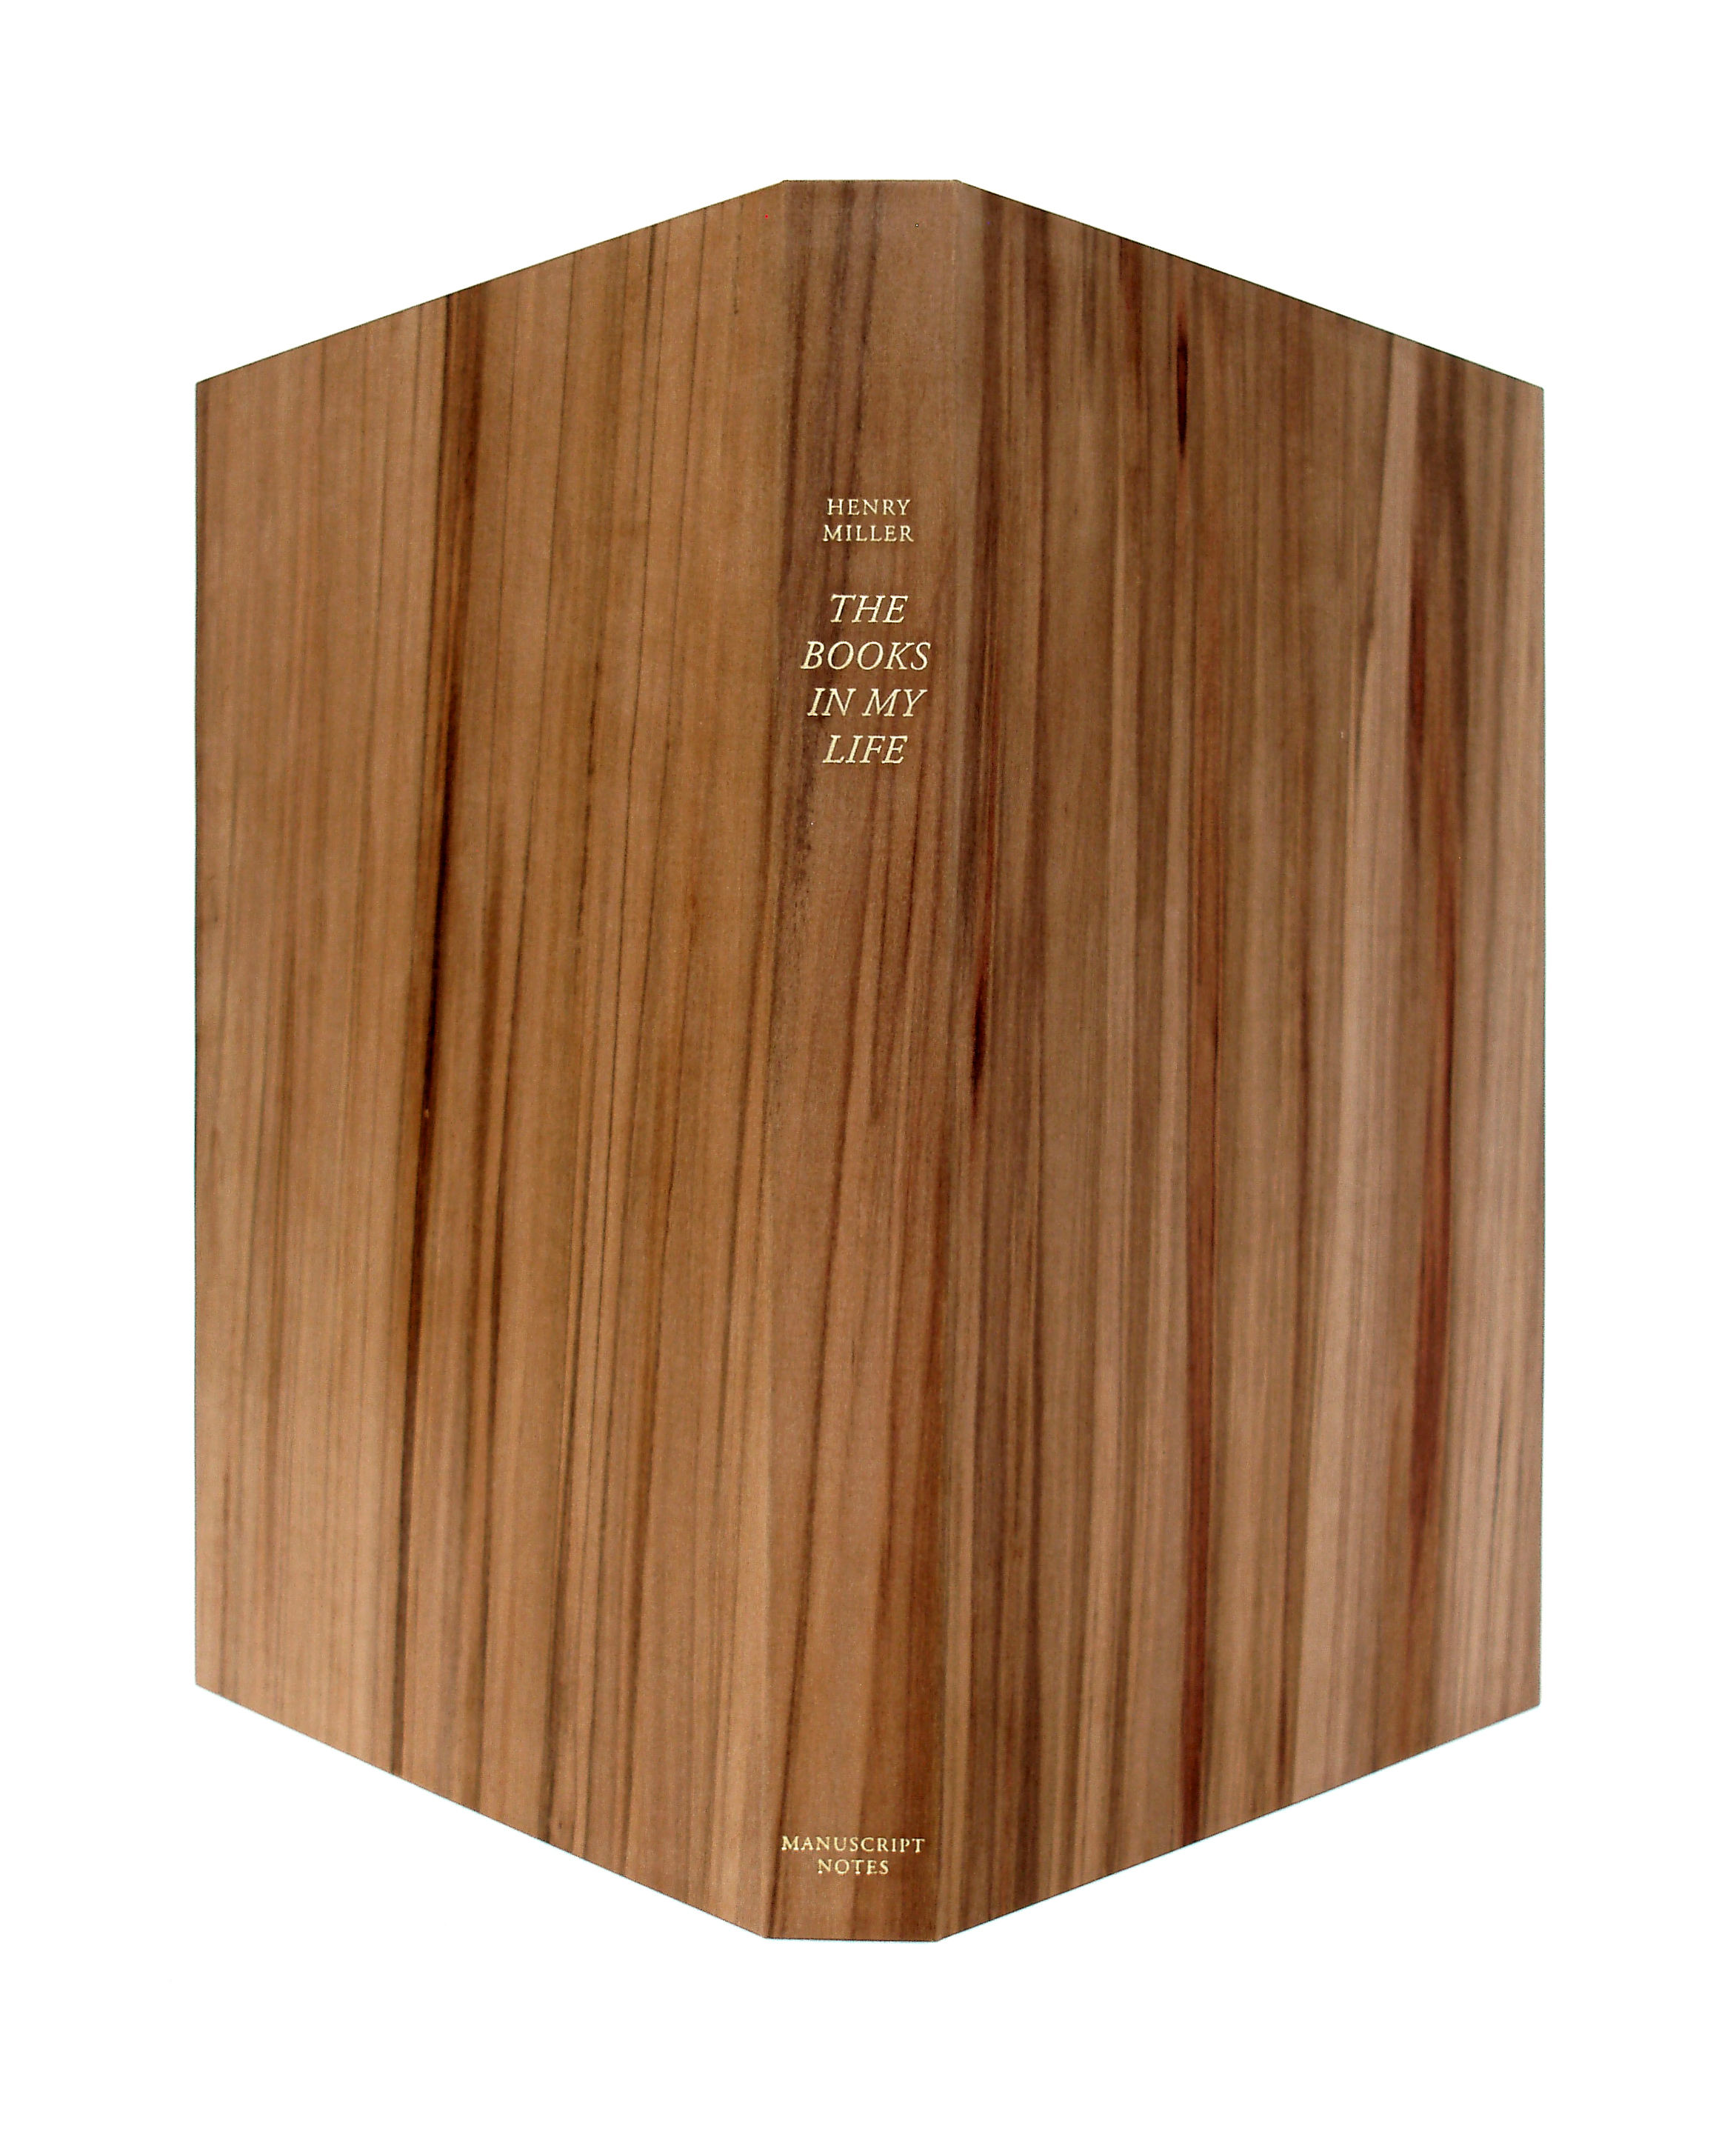 Book box in wood veneer